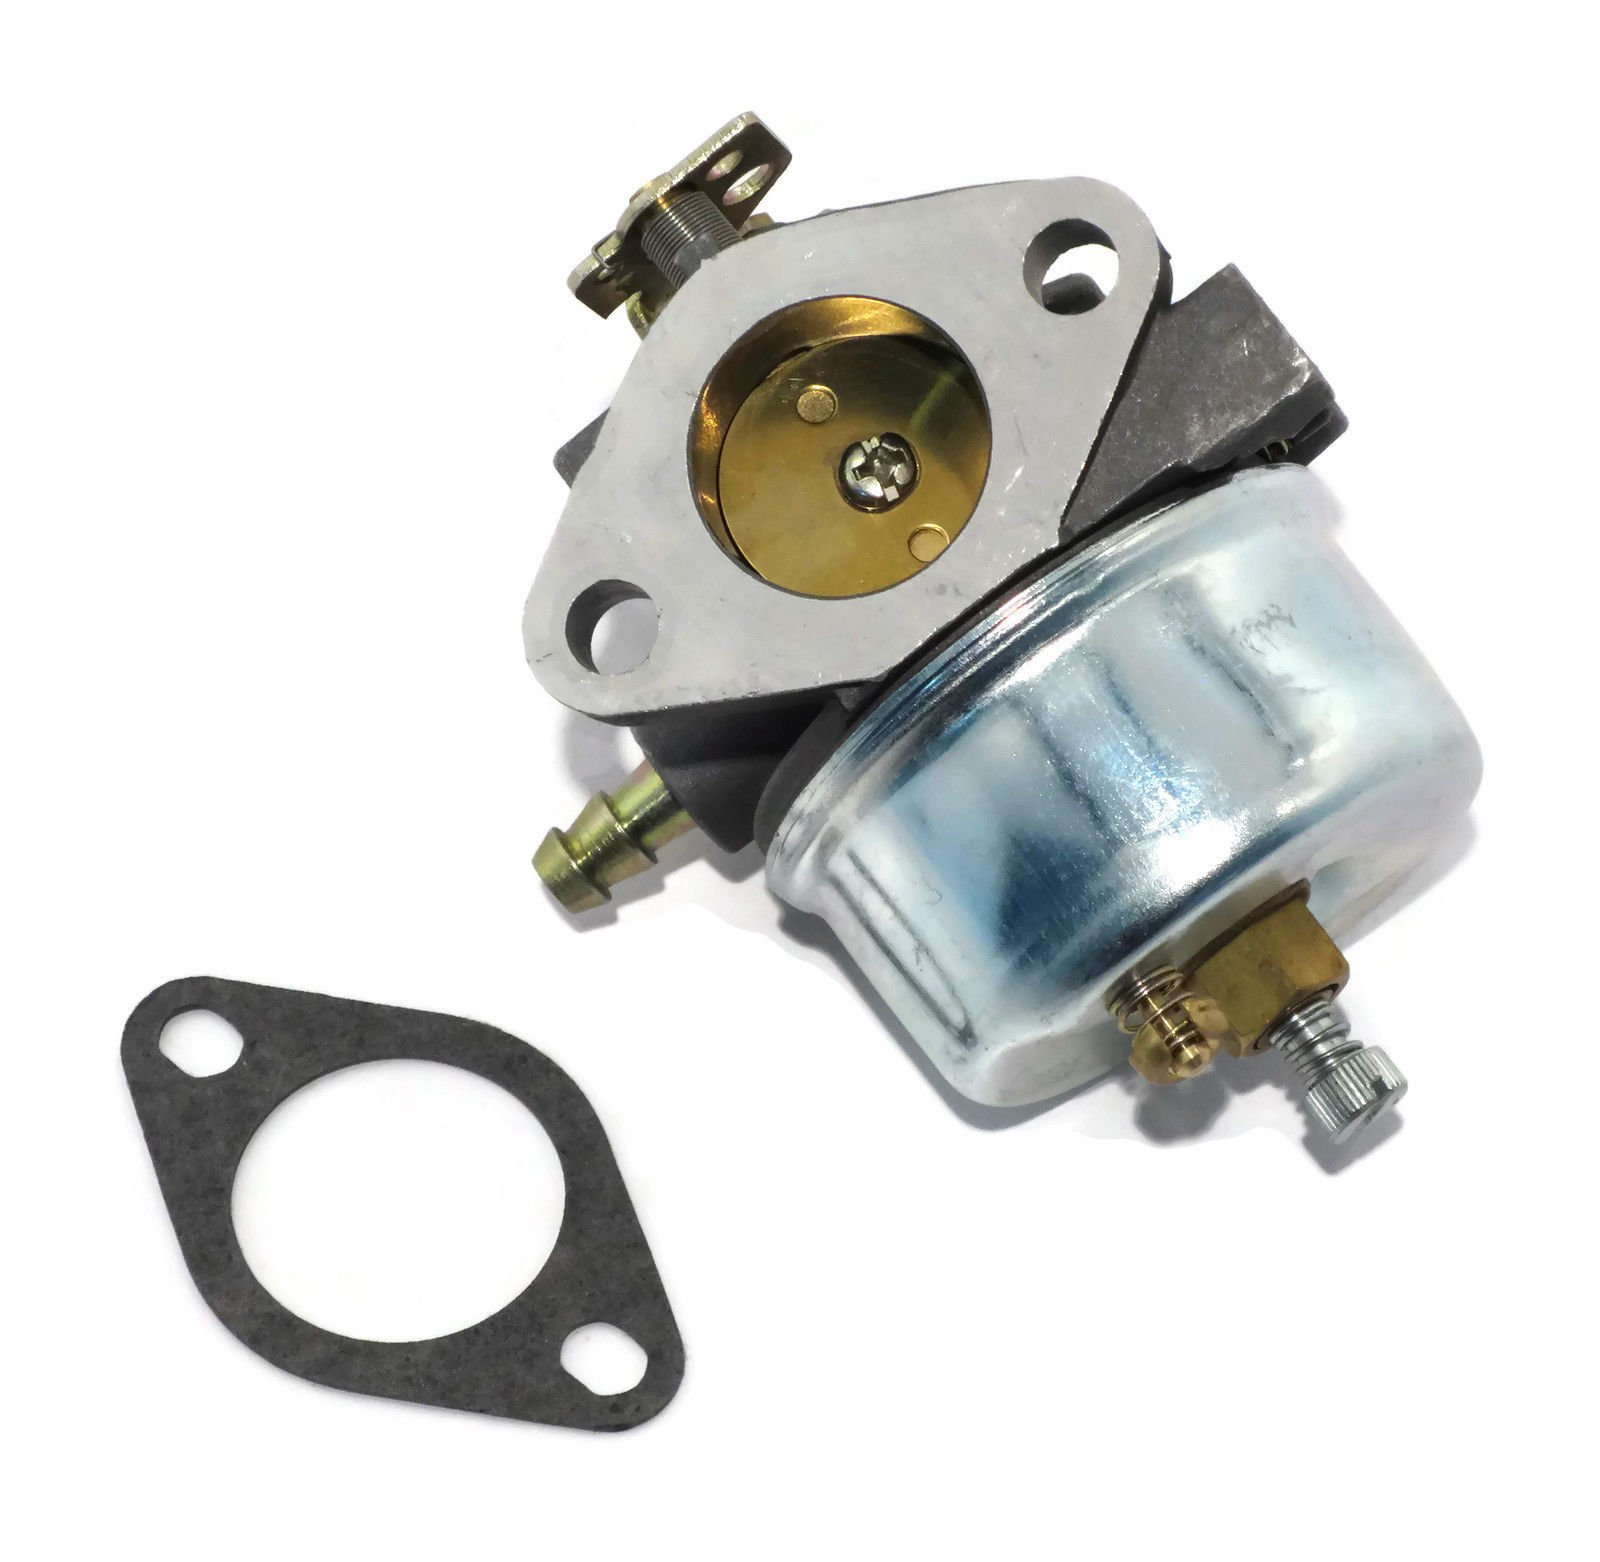 The ROP Shop New Adjustable Carburetor for John Deere AM134818, AM38161, AM100941, AM108412 by The ROP Shop